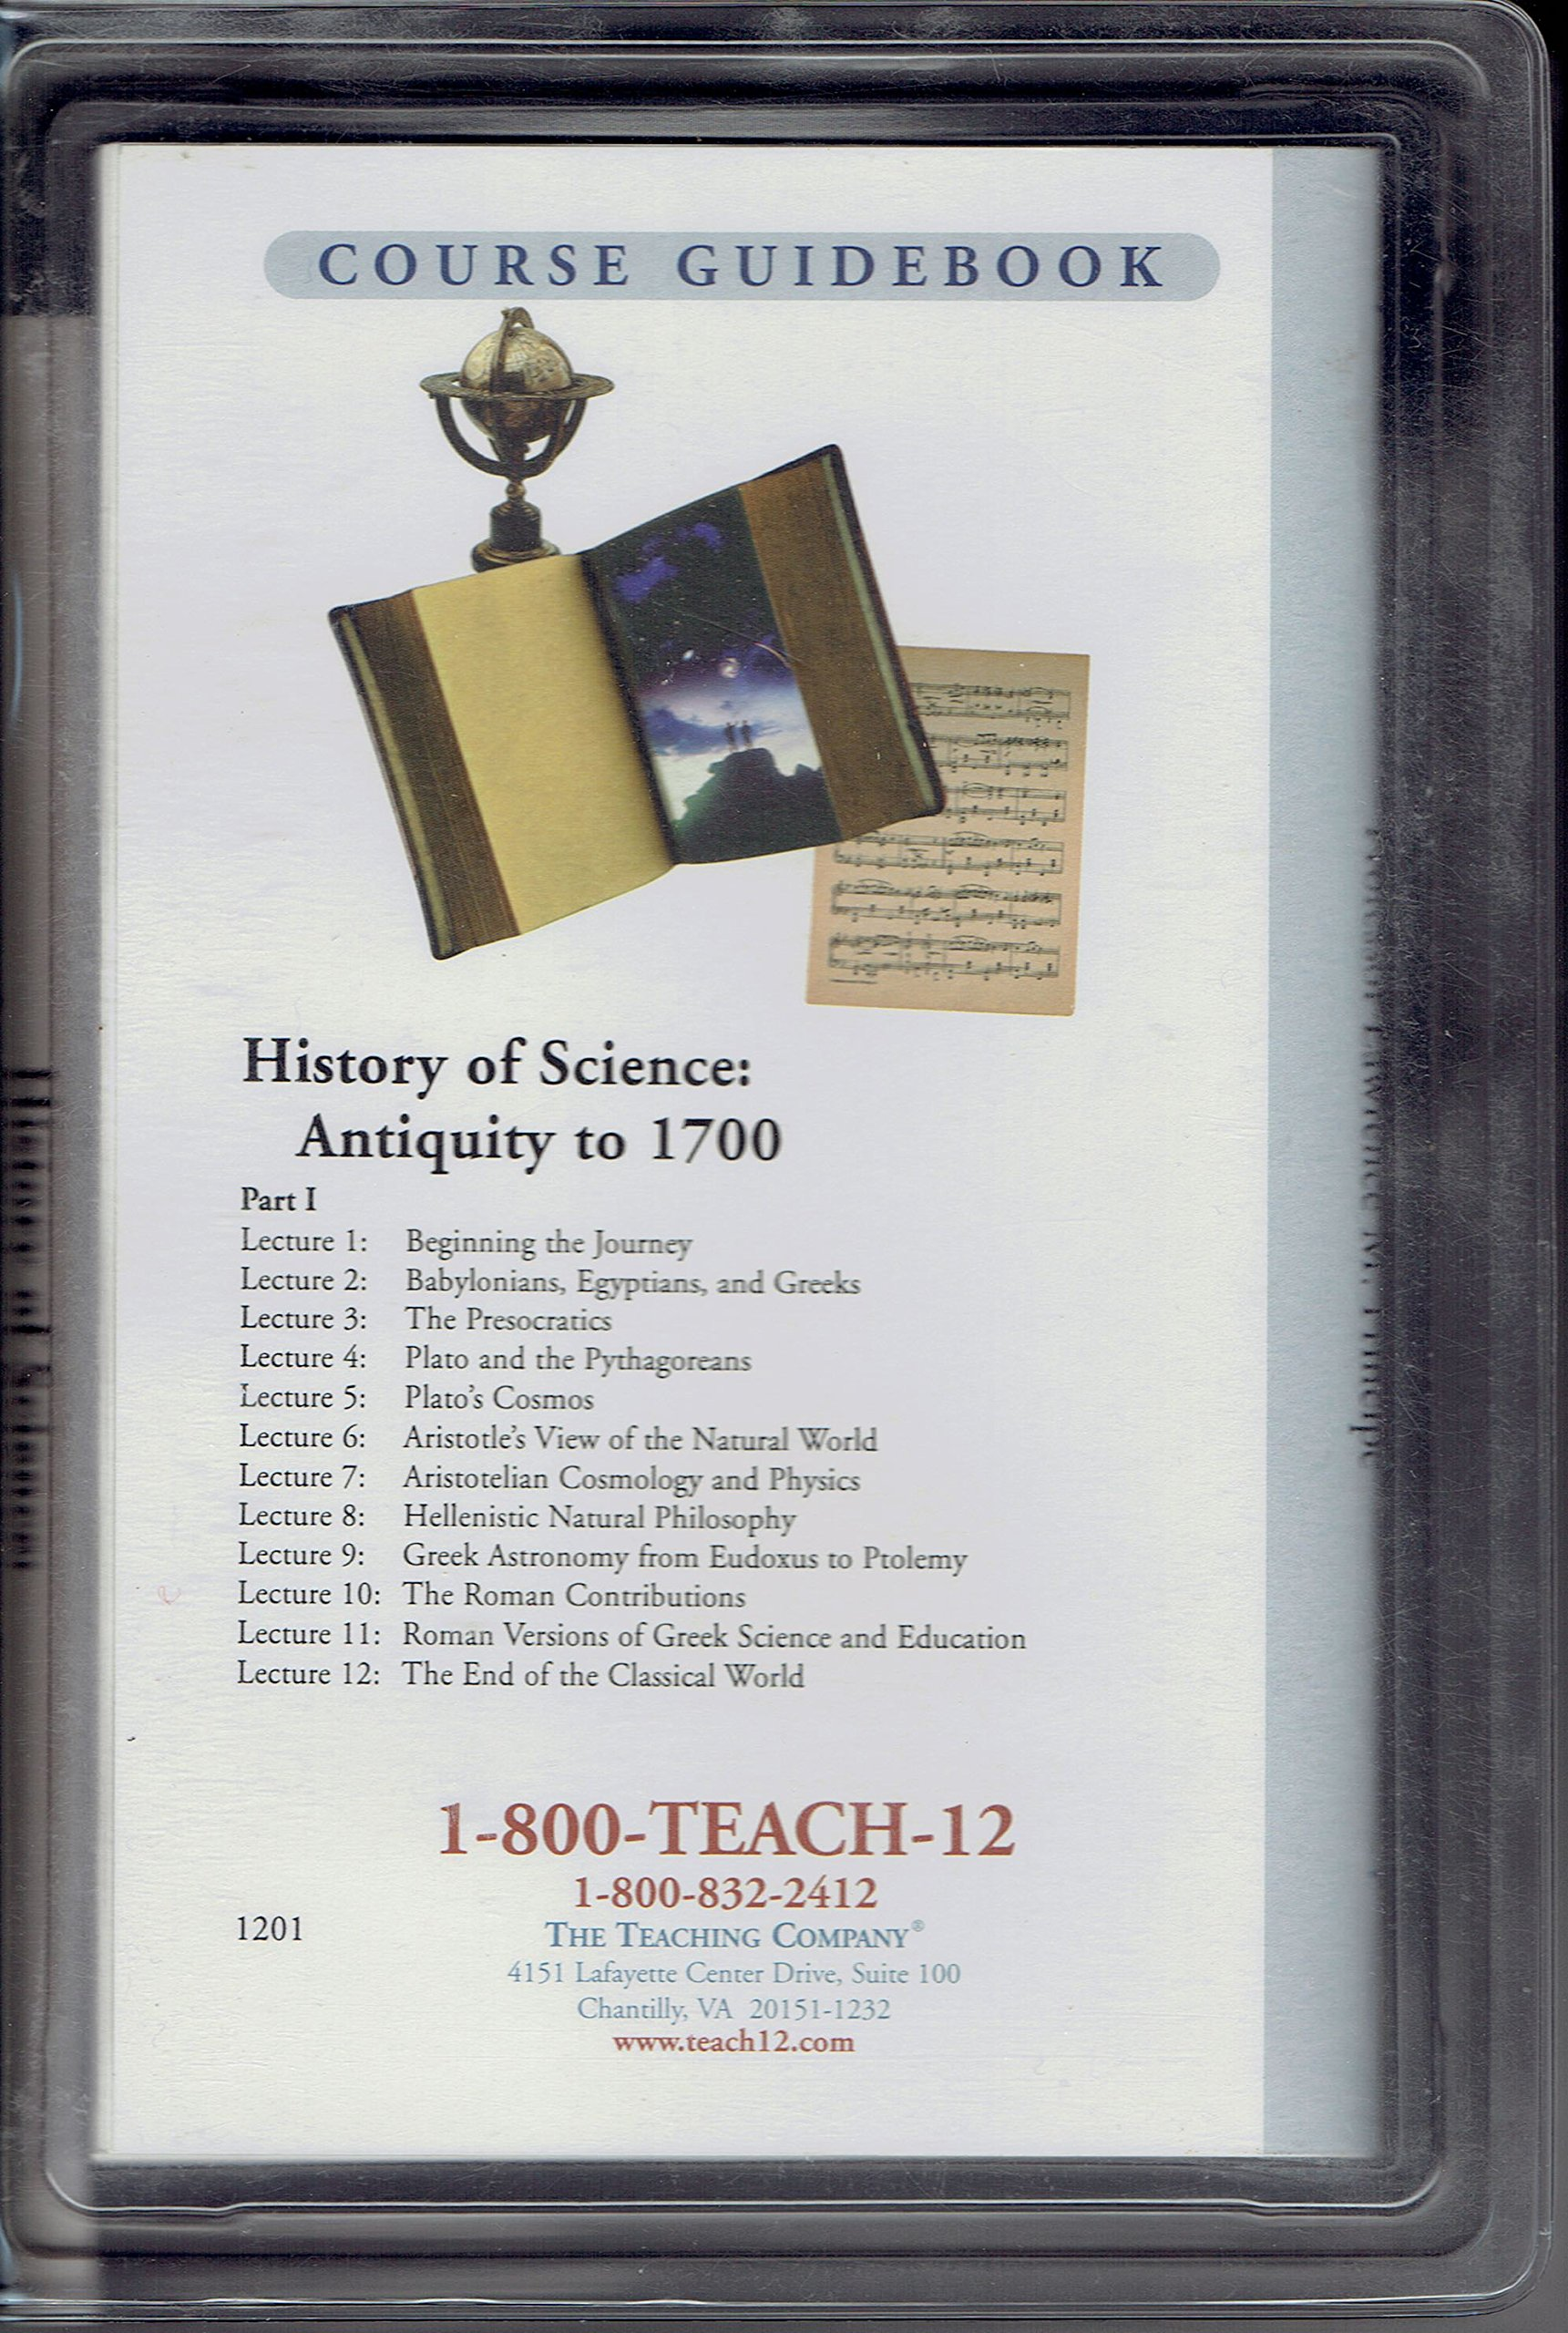 History of Science: Antiquity to 1700 - The Great Courses: Ancient & Medieval History (Audio CDs) by Teaching Company